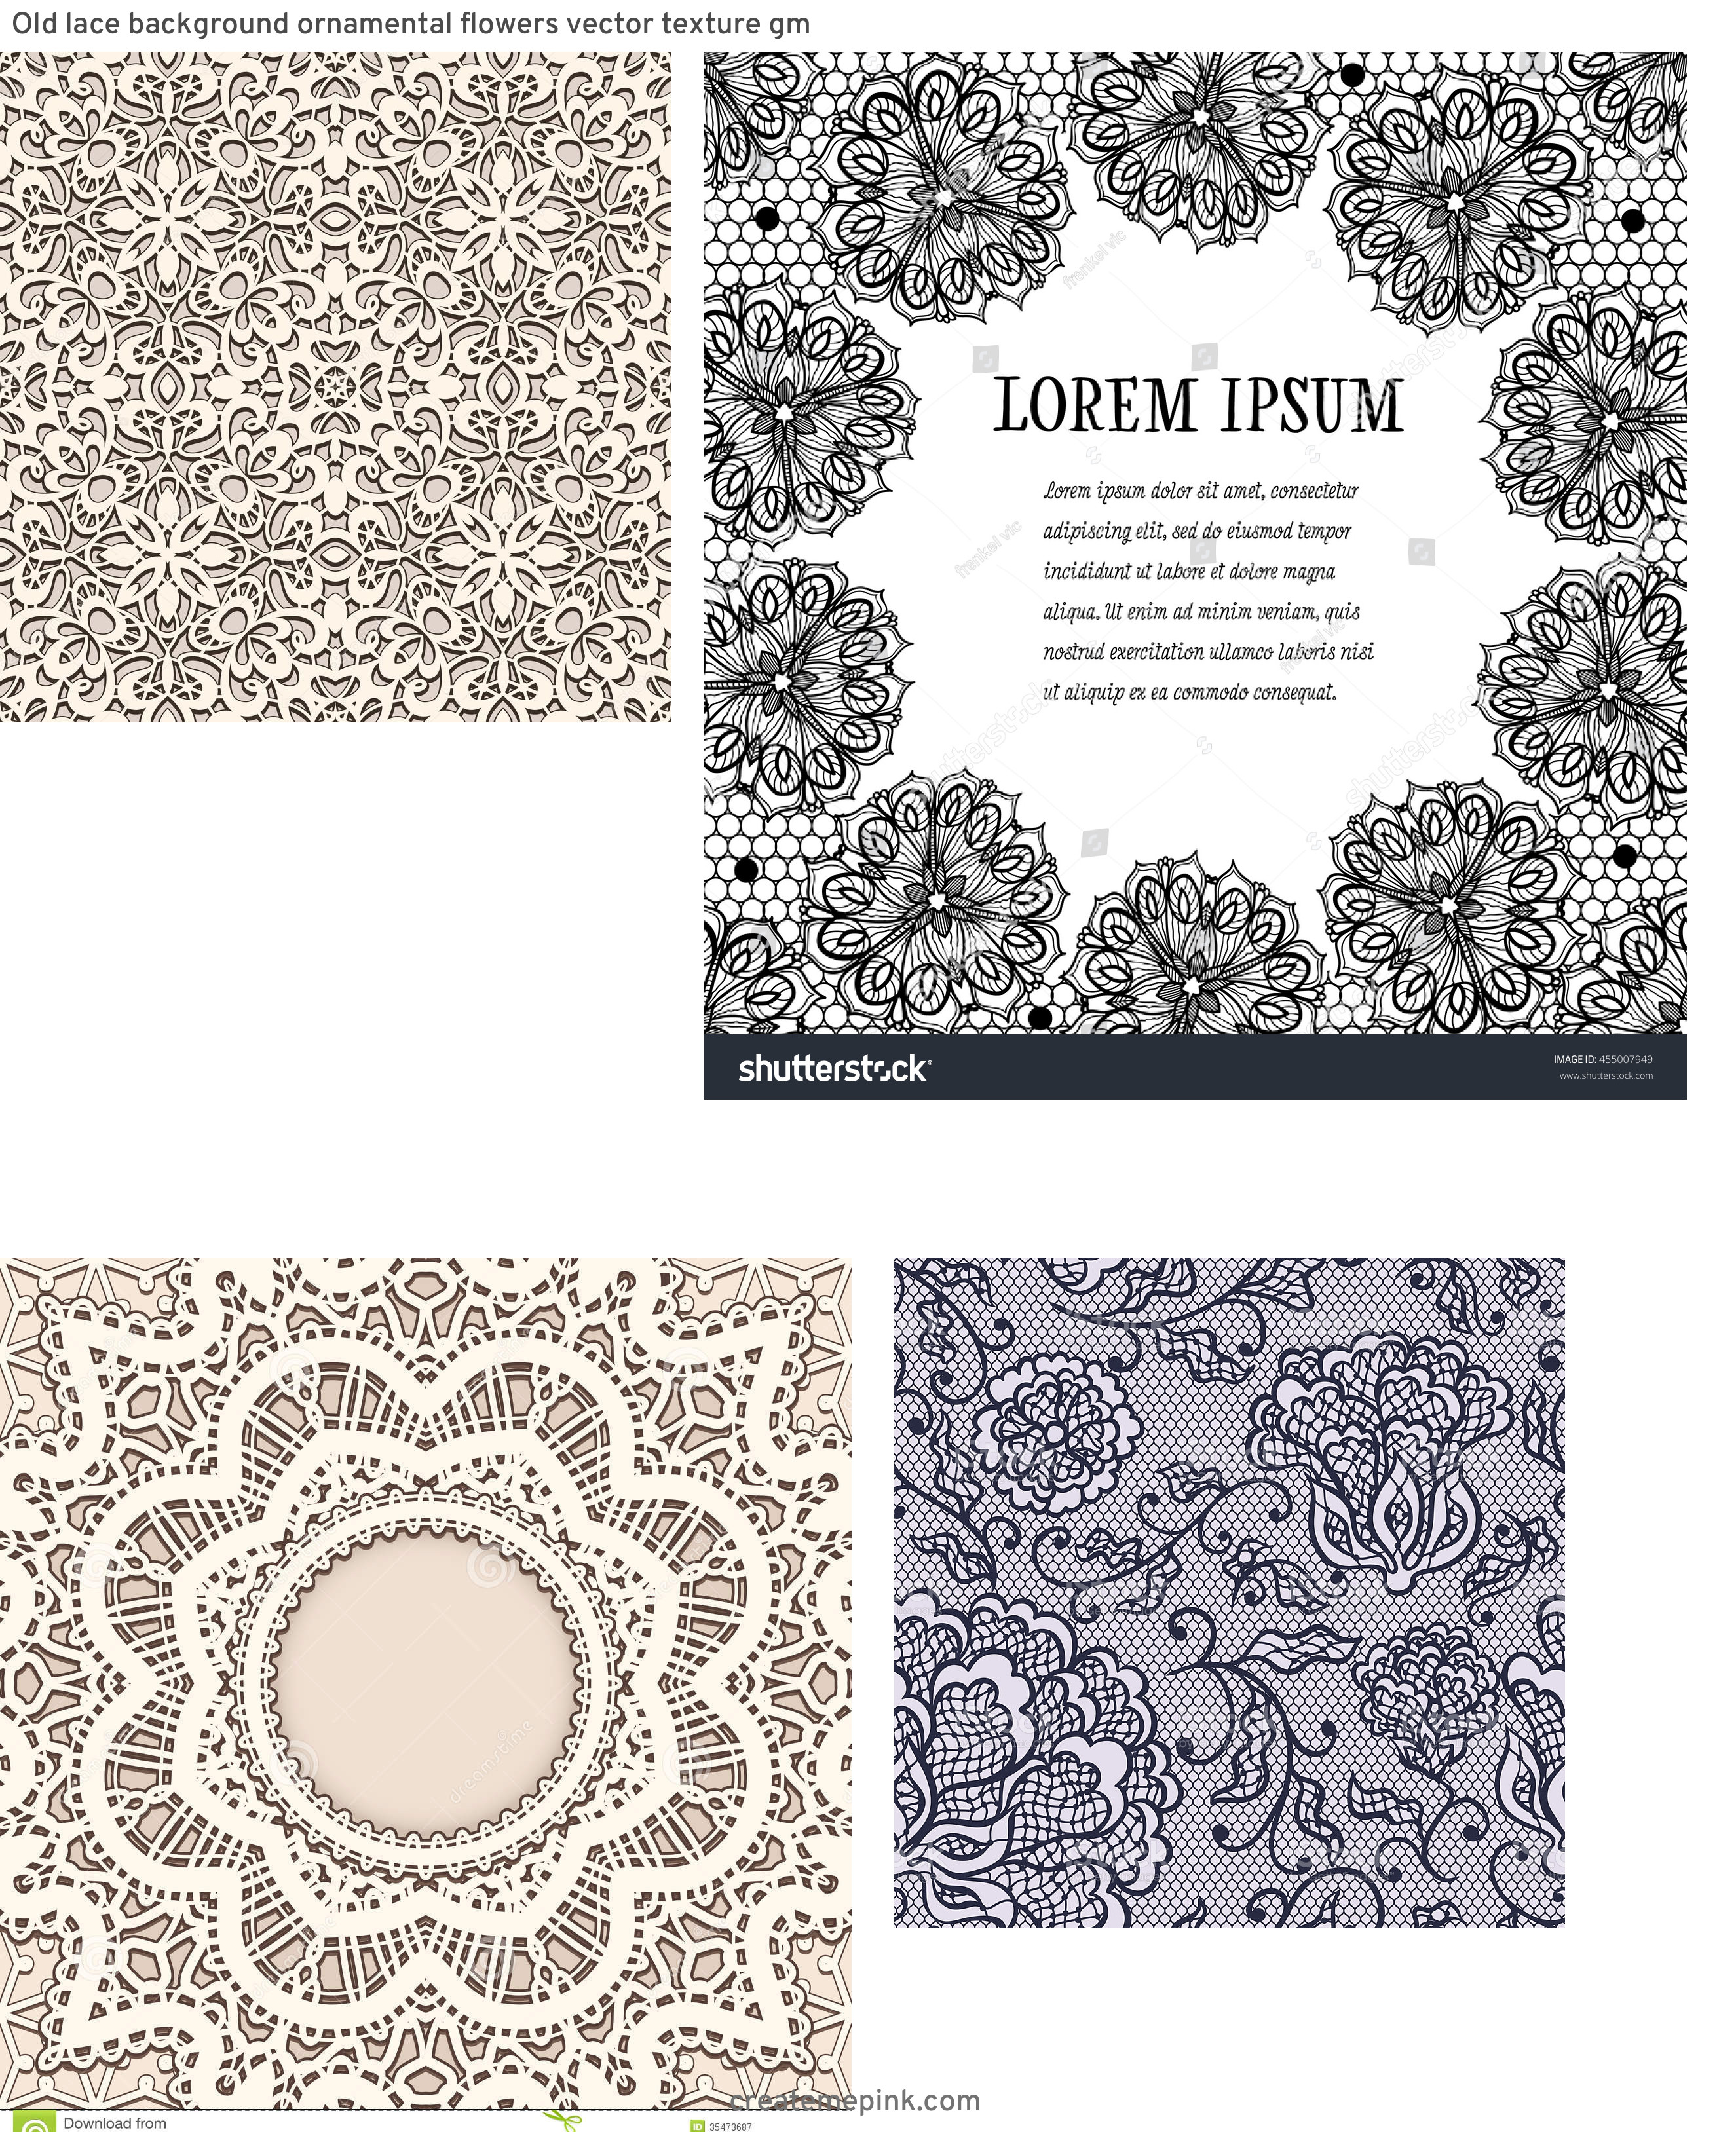 Vector Old Lace Black: Old Lace Background Ornamental Flowers Vector Texture Gm